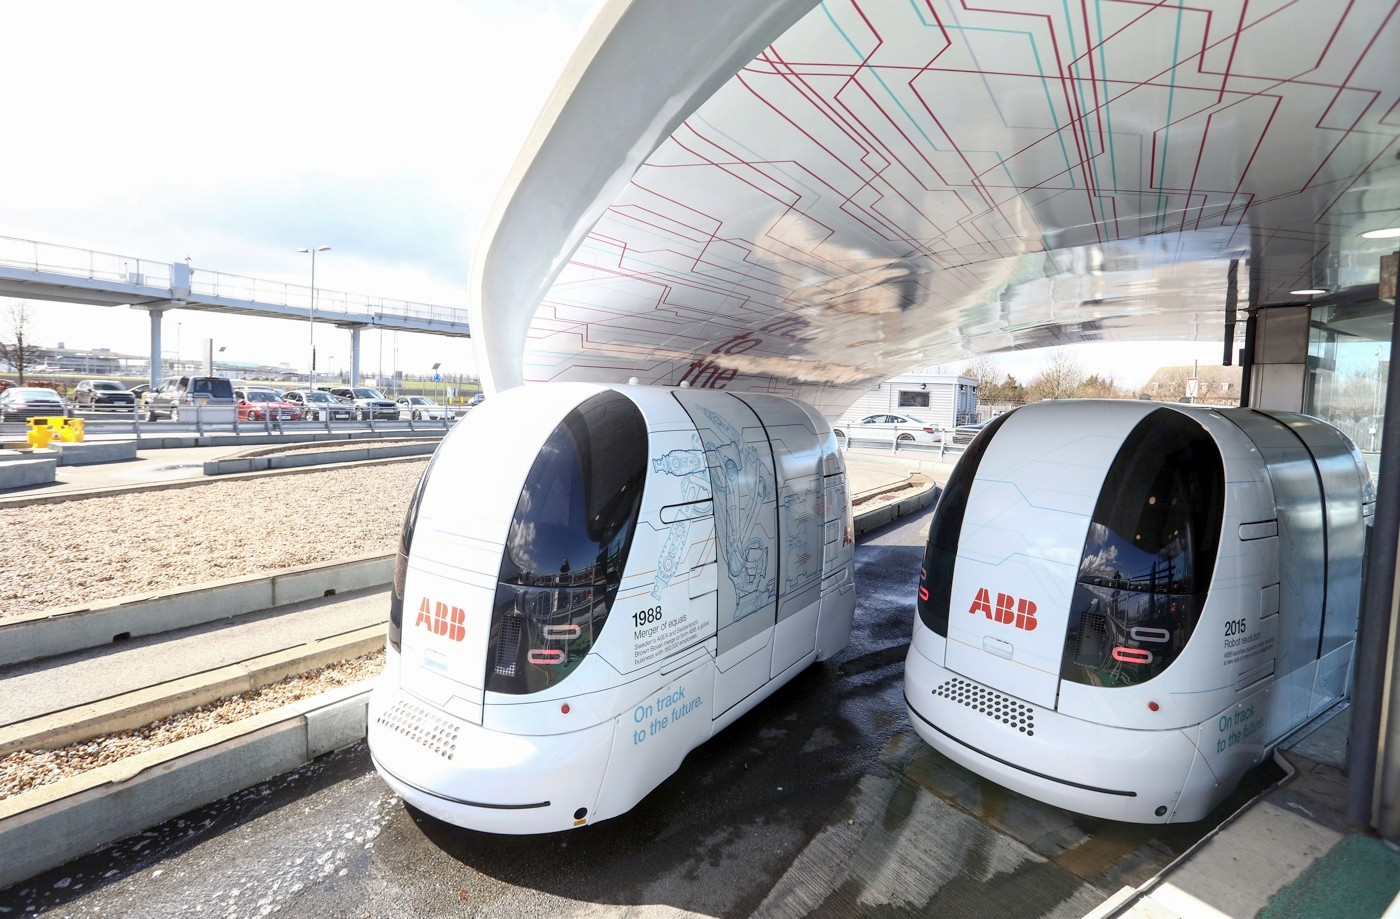 Self driving pods wait at a car park at Heathrow airport in London, U.K., on Tuesday, March 29, 2016. Some of the Ultra Global PRT Pods will be developed to take part in the GATEway (Greenwich Automated Transport Environment) Project and be tested on streets without dedicated tracks, according to a statement on the TRL Ltd. website. Photographer: Chris Ratcliffe/Bloomberg